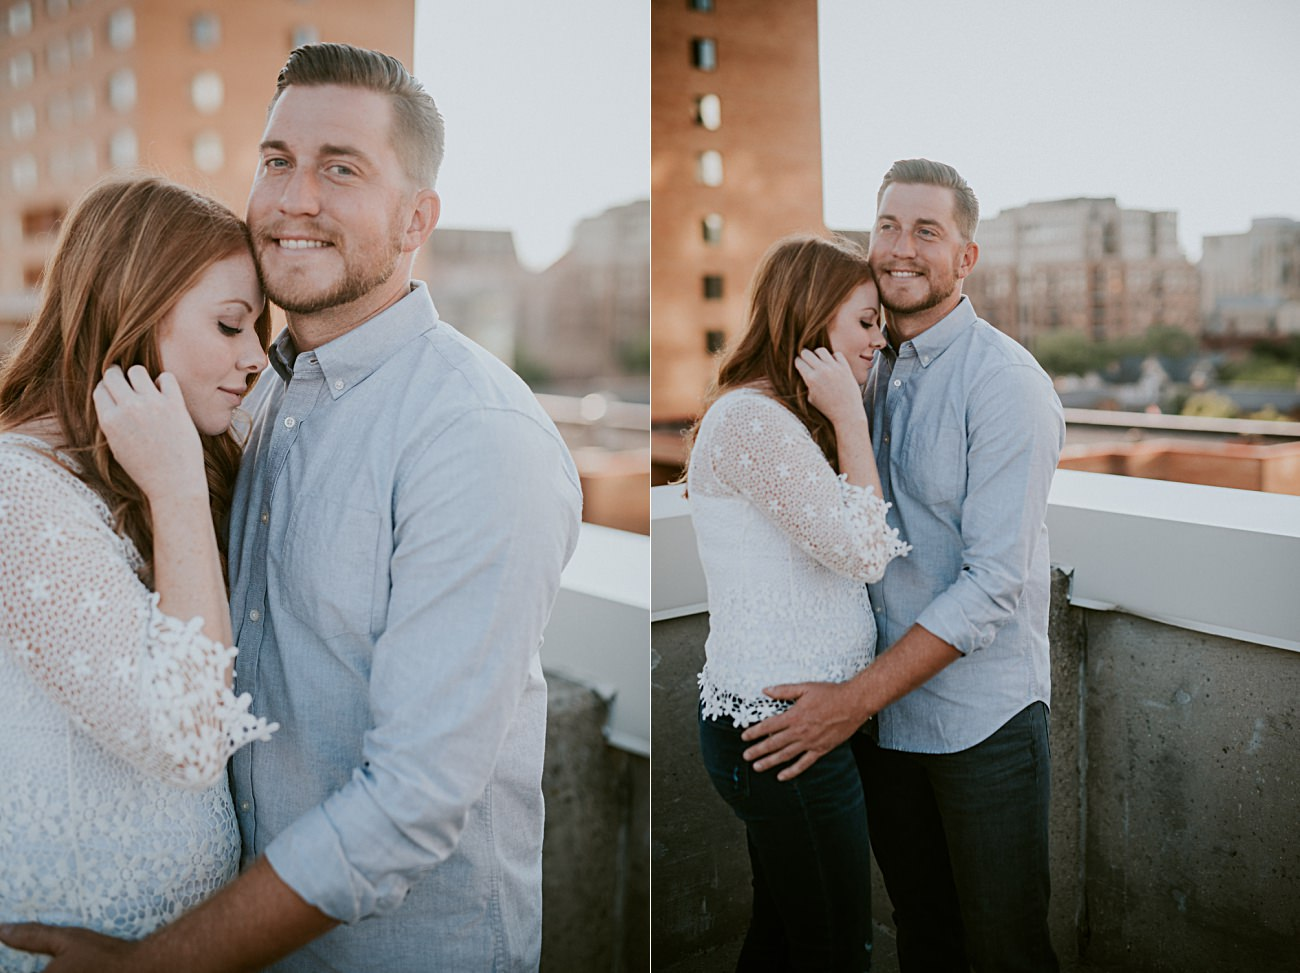 Parking Garage Engagement, Downtown Engagement in Madison Wisconsin, Urban Engagement, Madison WI Wedding Photographer